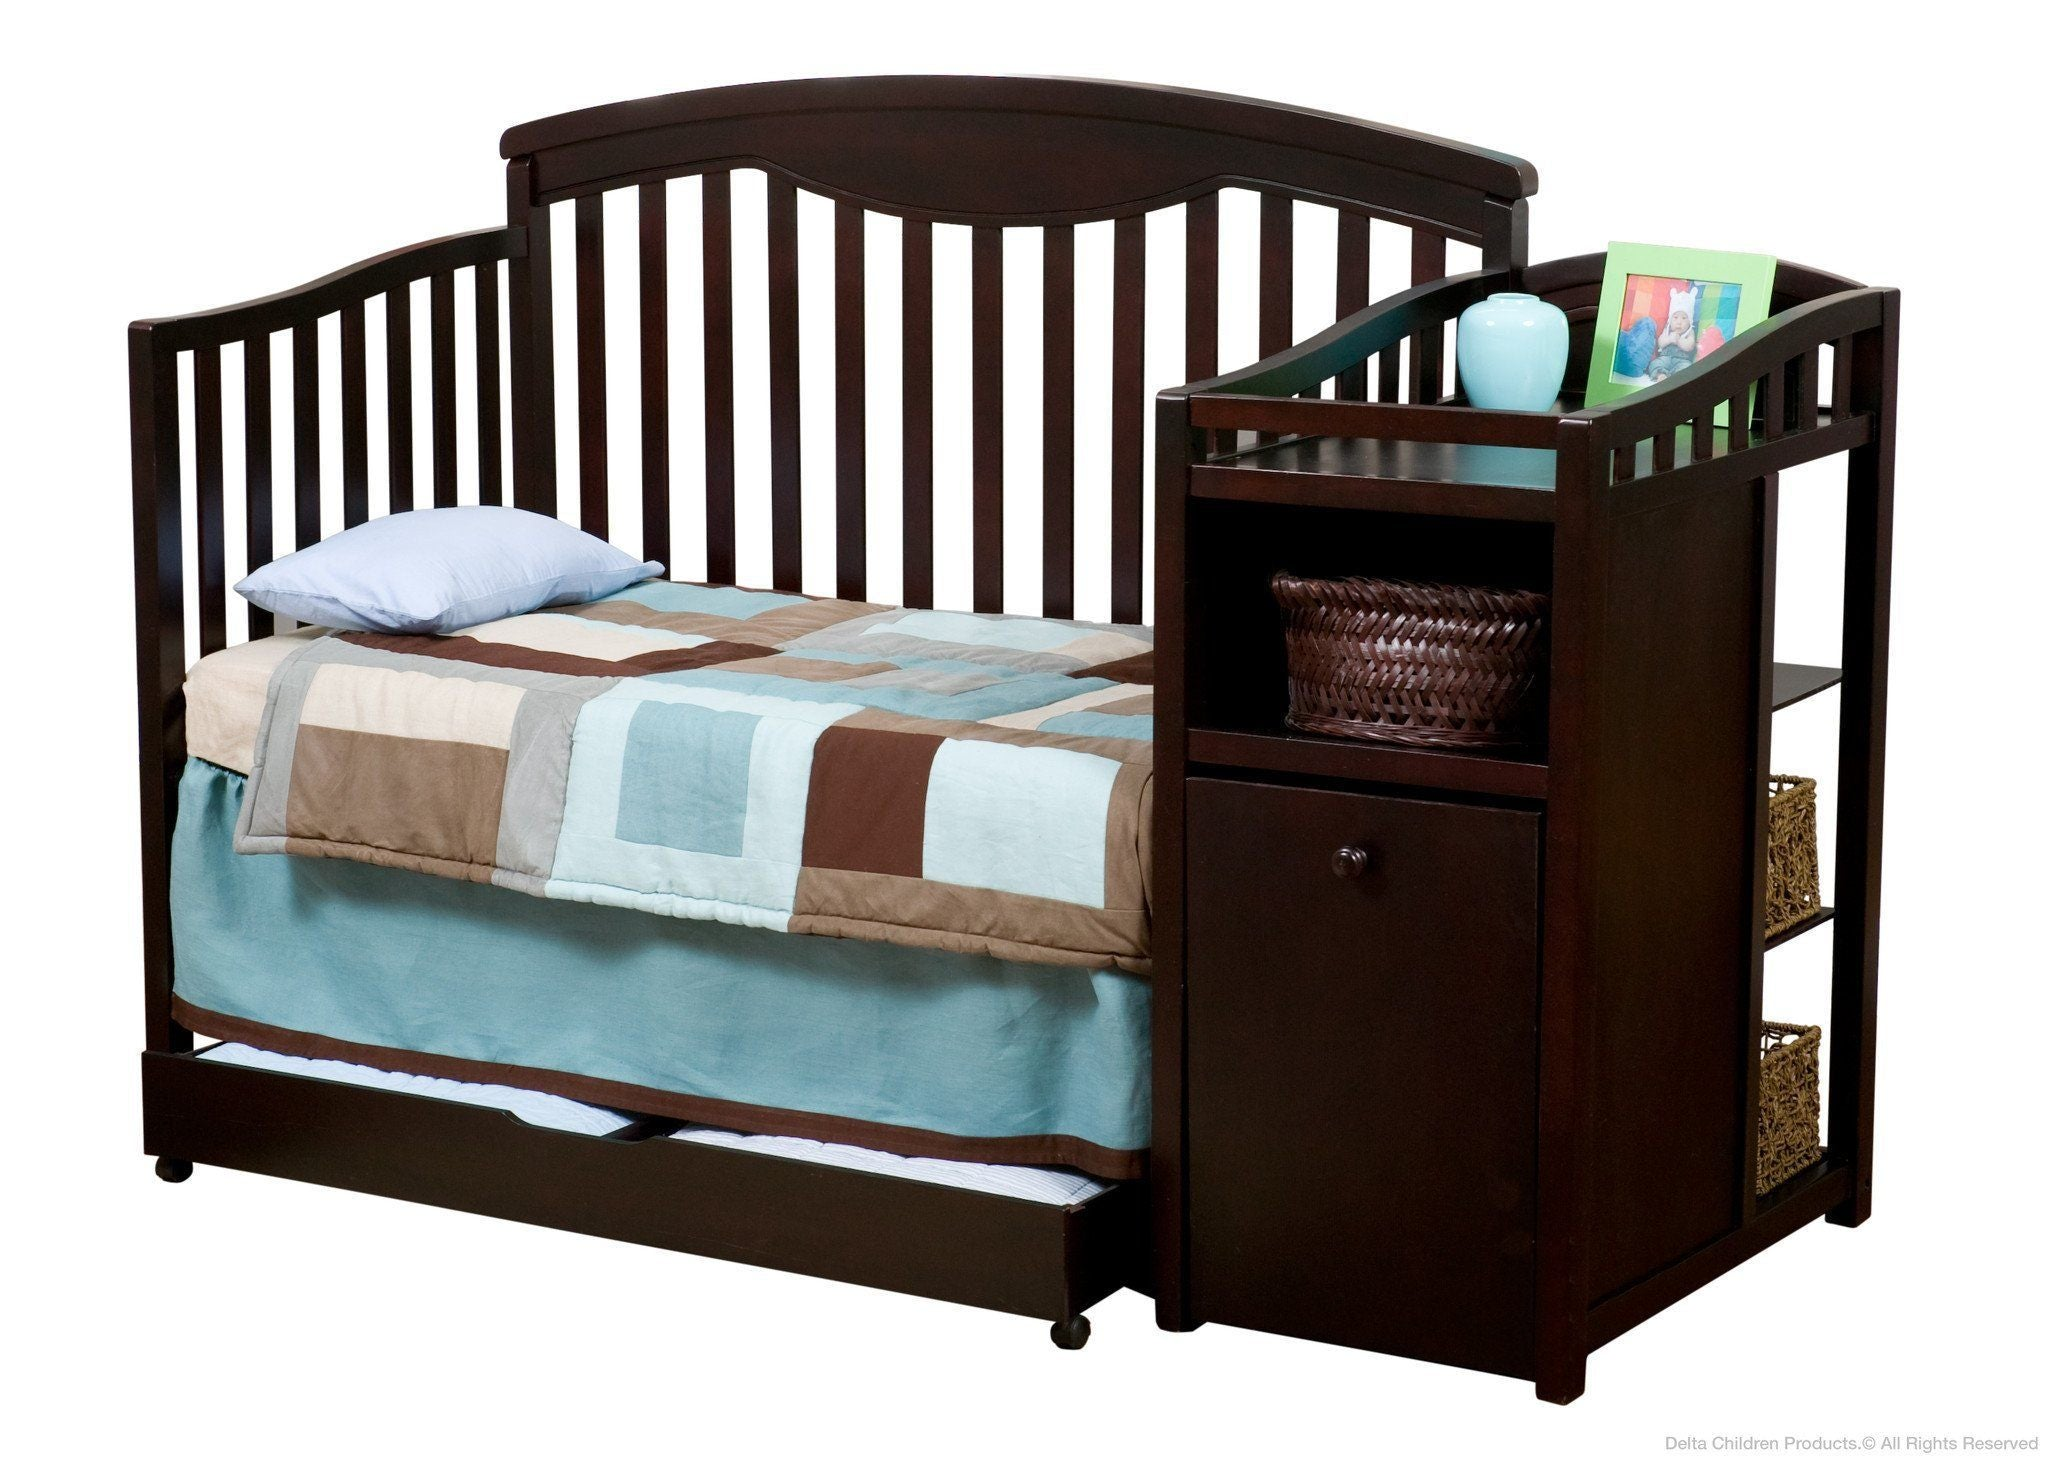 on dream kids me niko table crib convertible pdx and combo wayfair baby changer changing in reviews